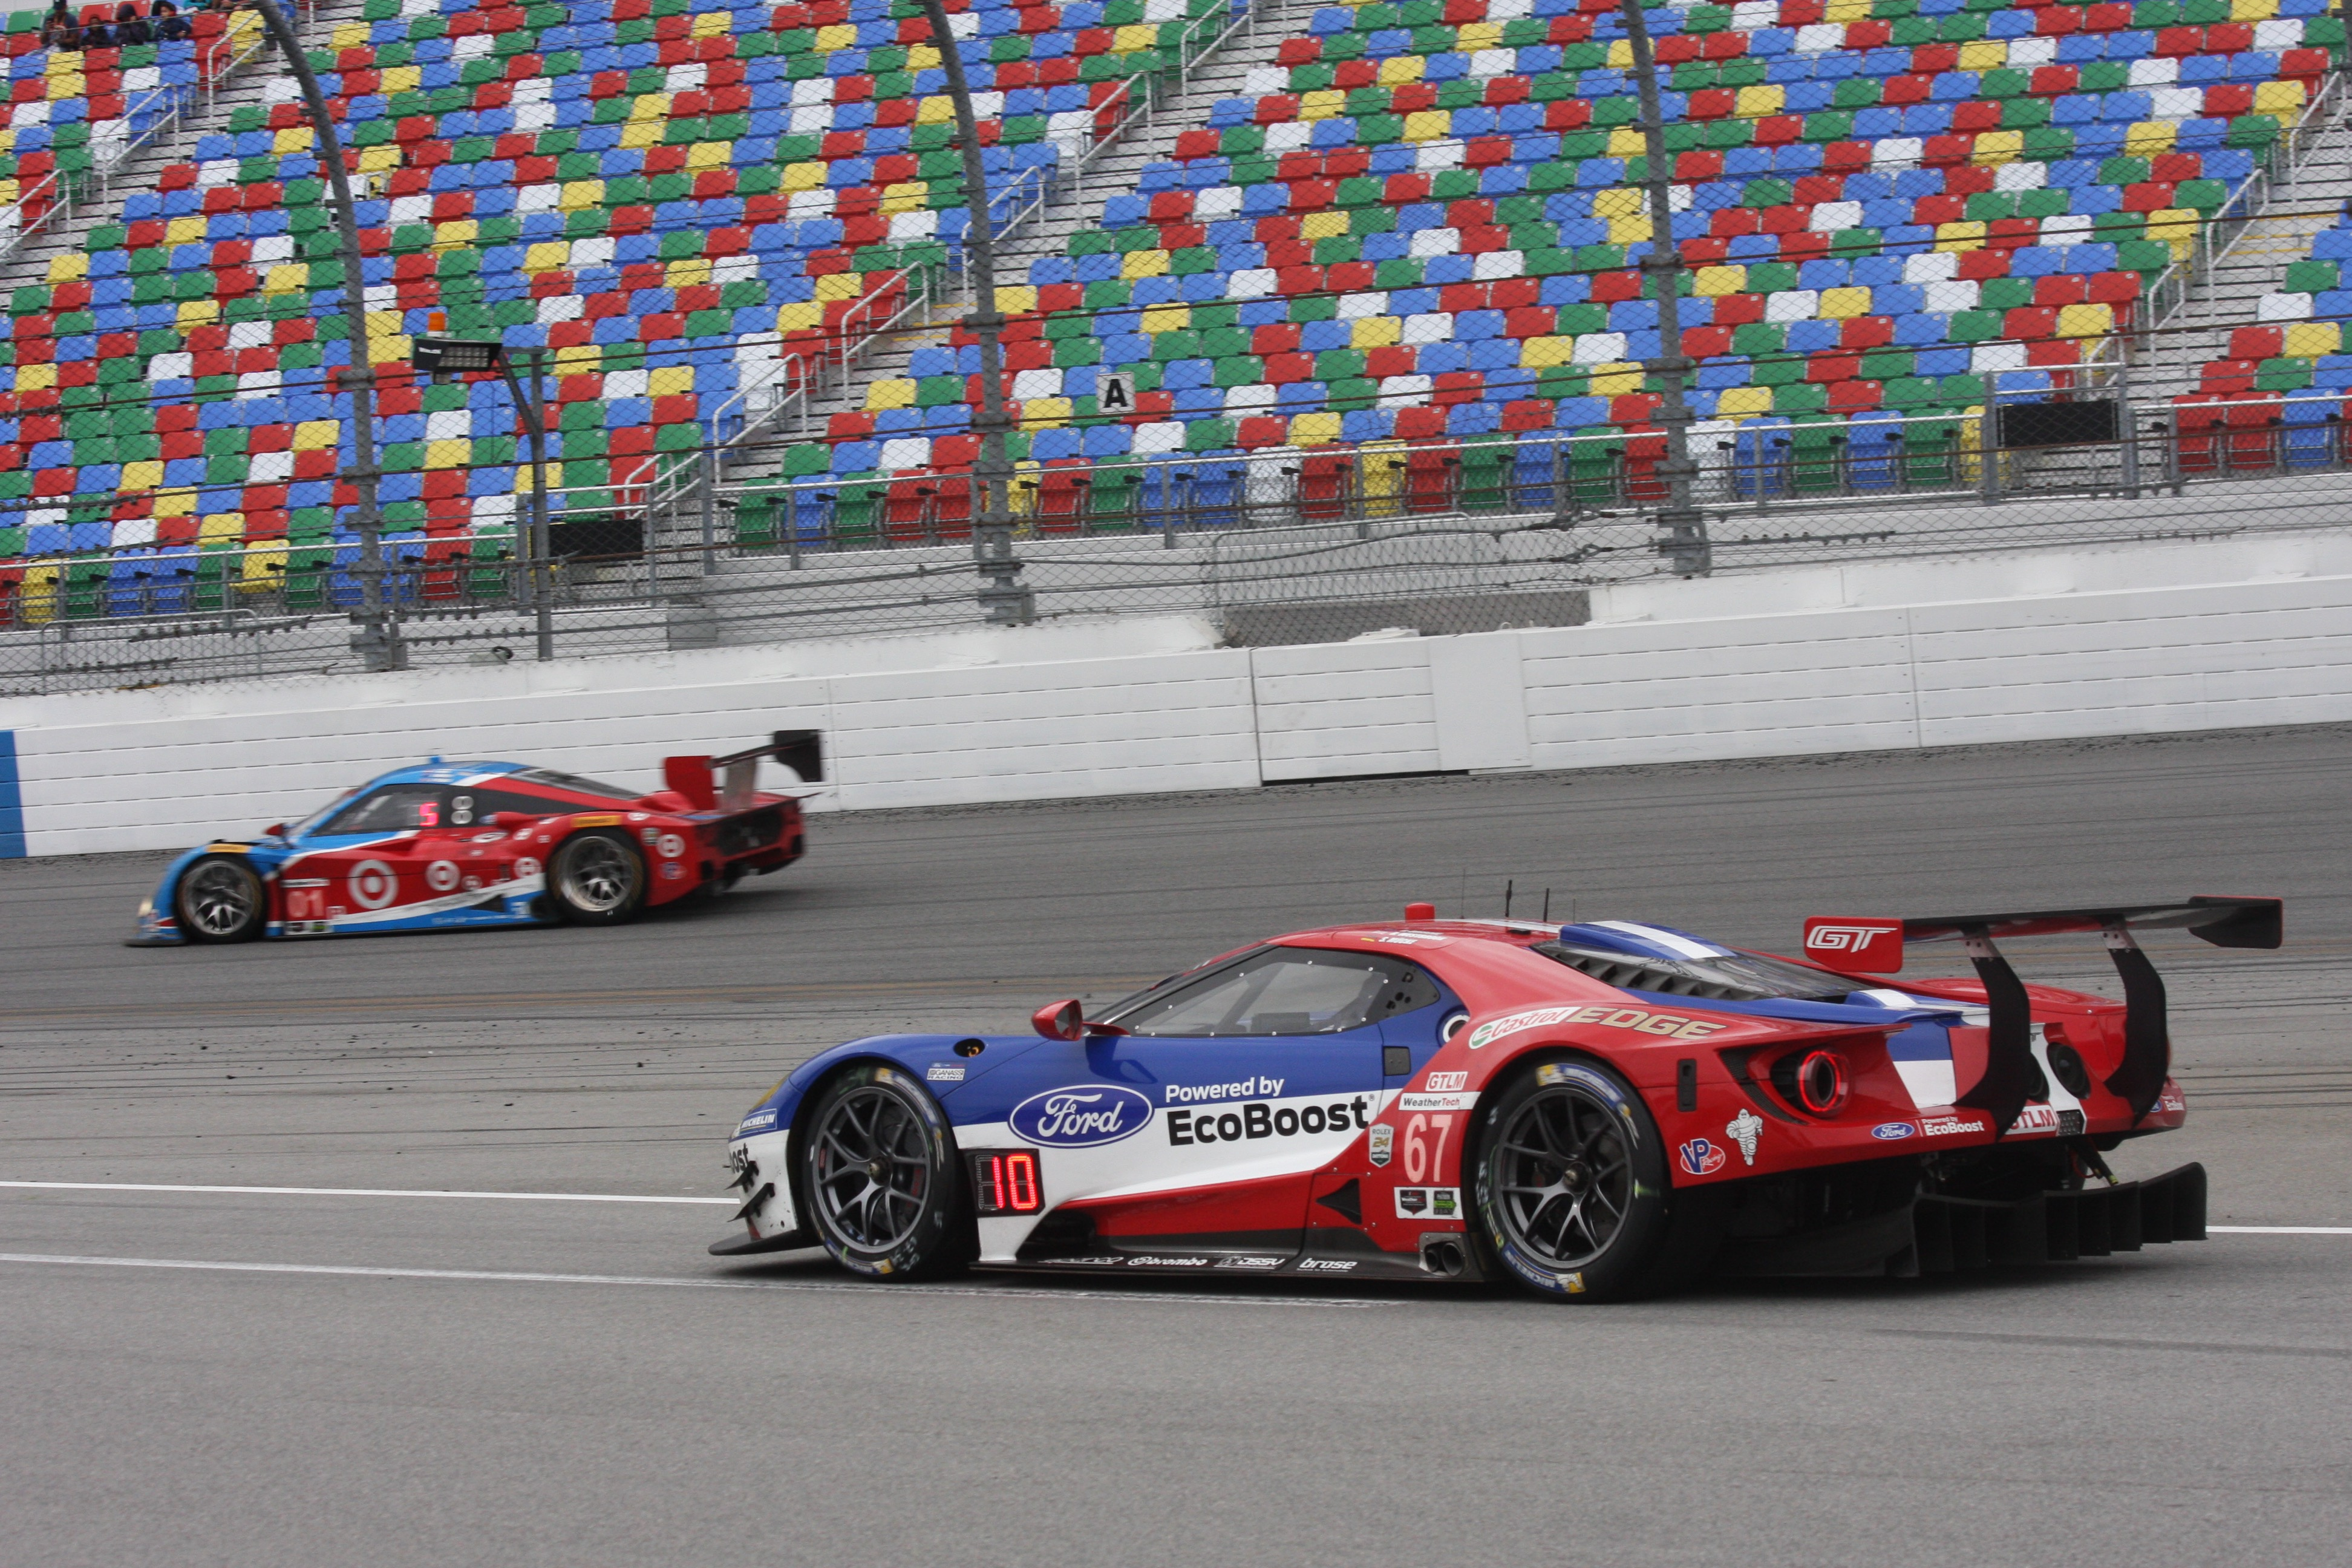 The beginner s guide to the rolex 24 at daytona mega gallery